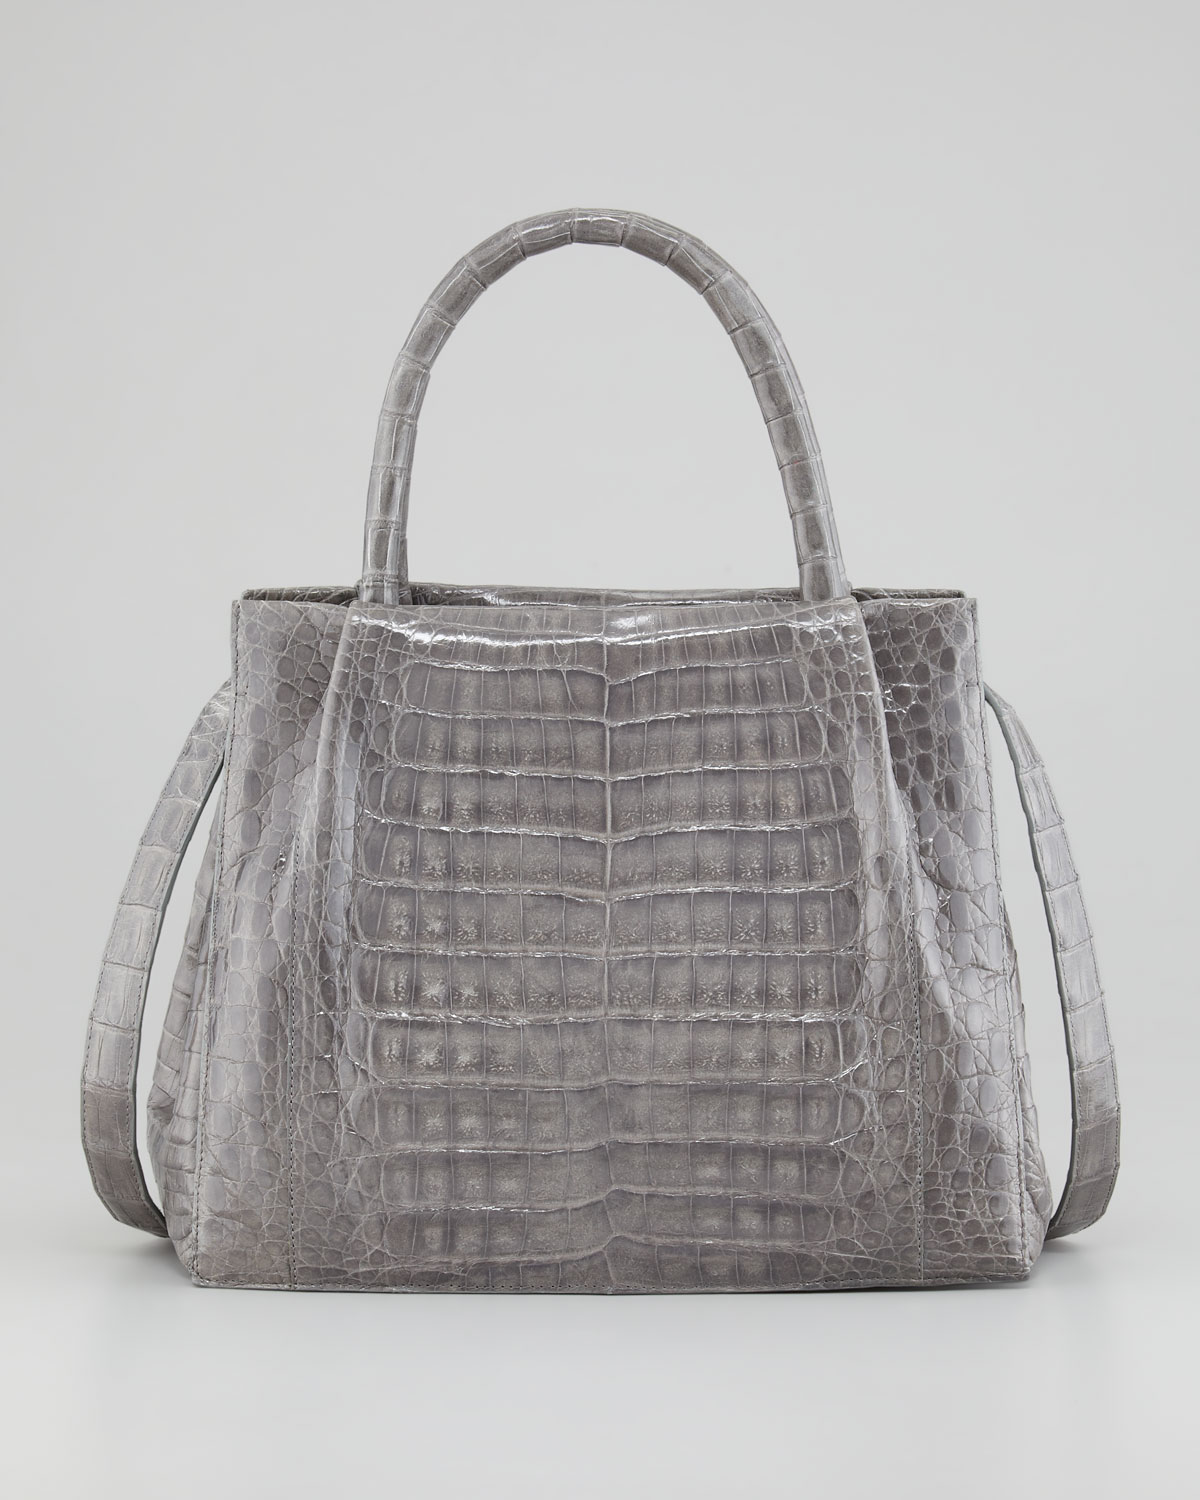 Nancy gonzalez crocodile box small tote bag gray in gray for Nancy gonzalez crocodile tote